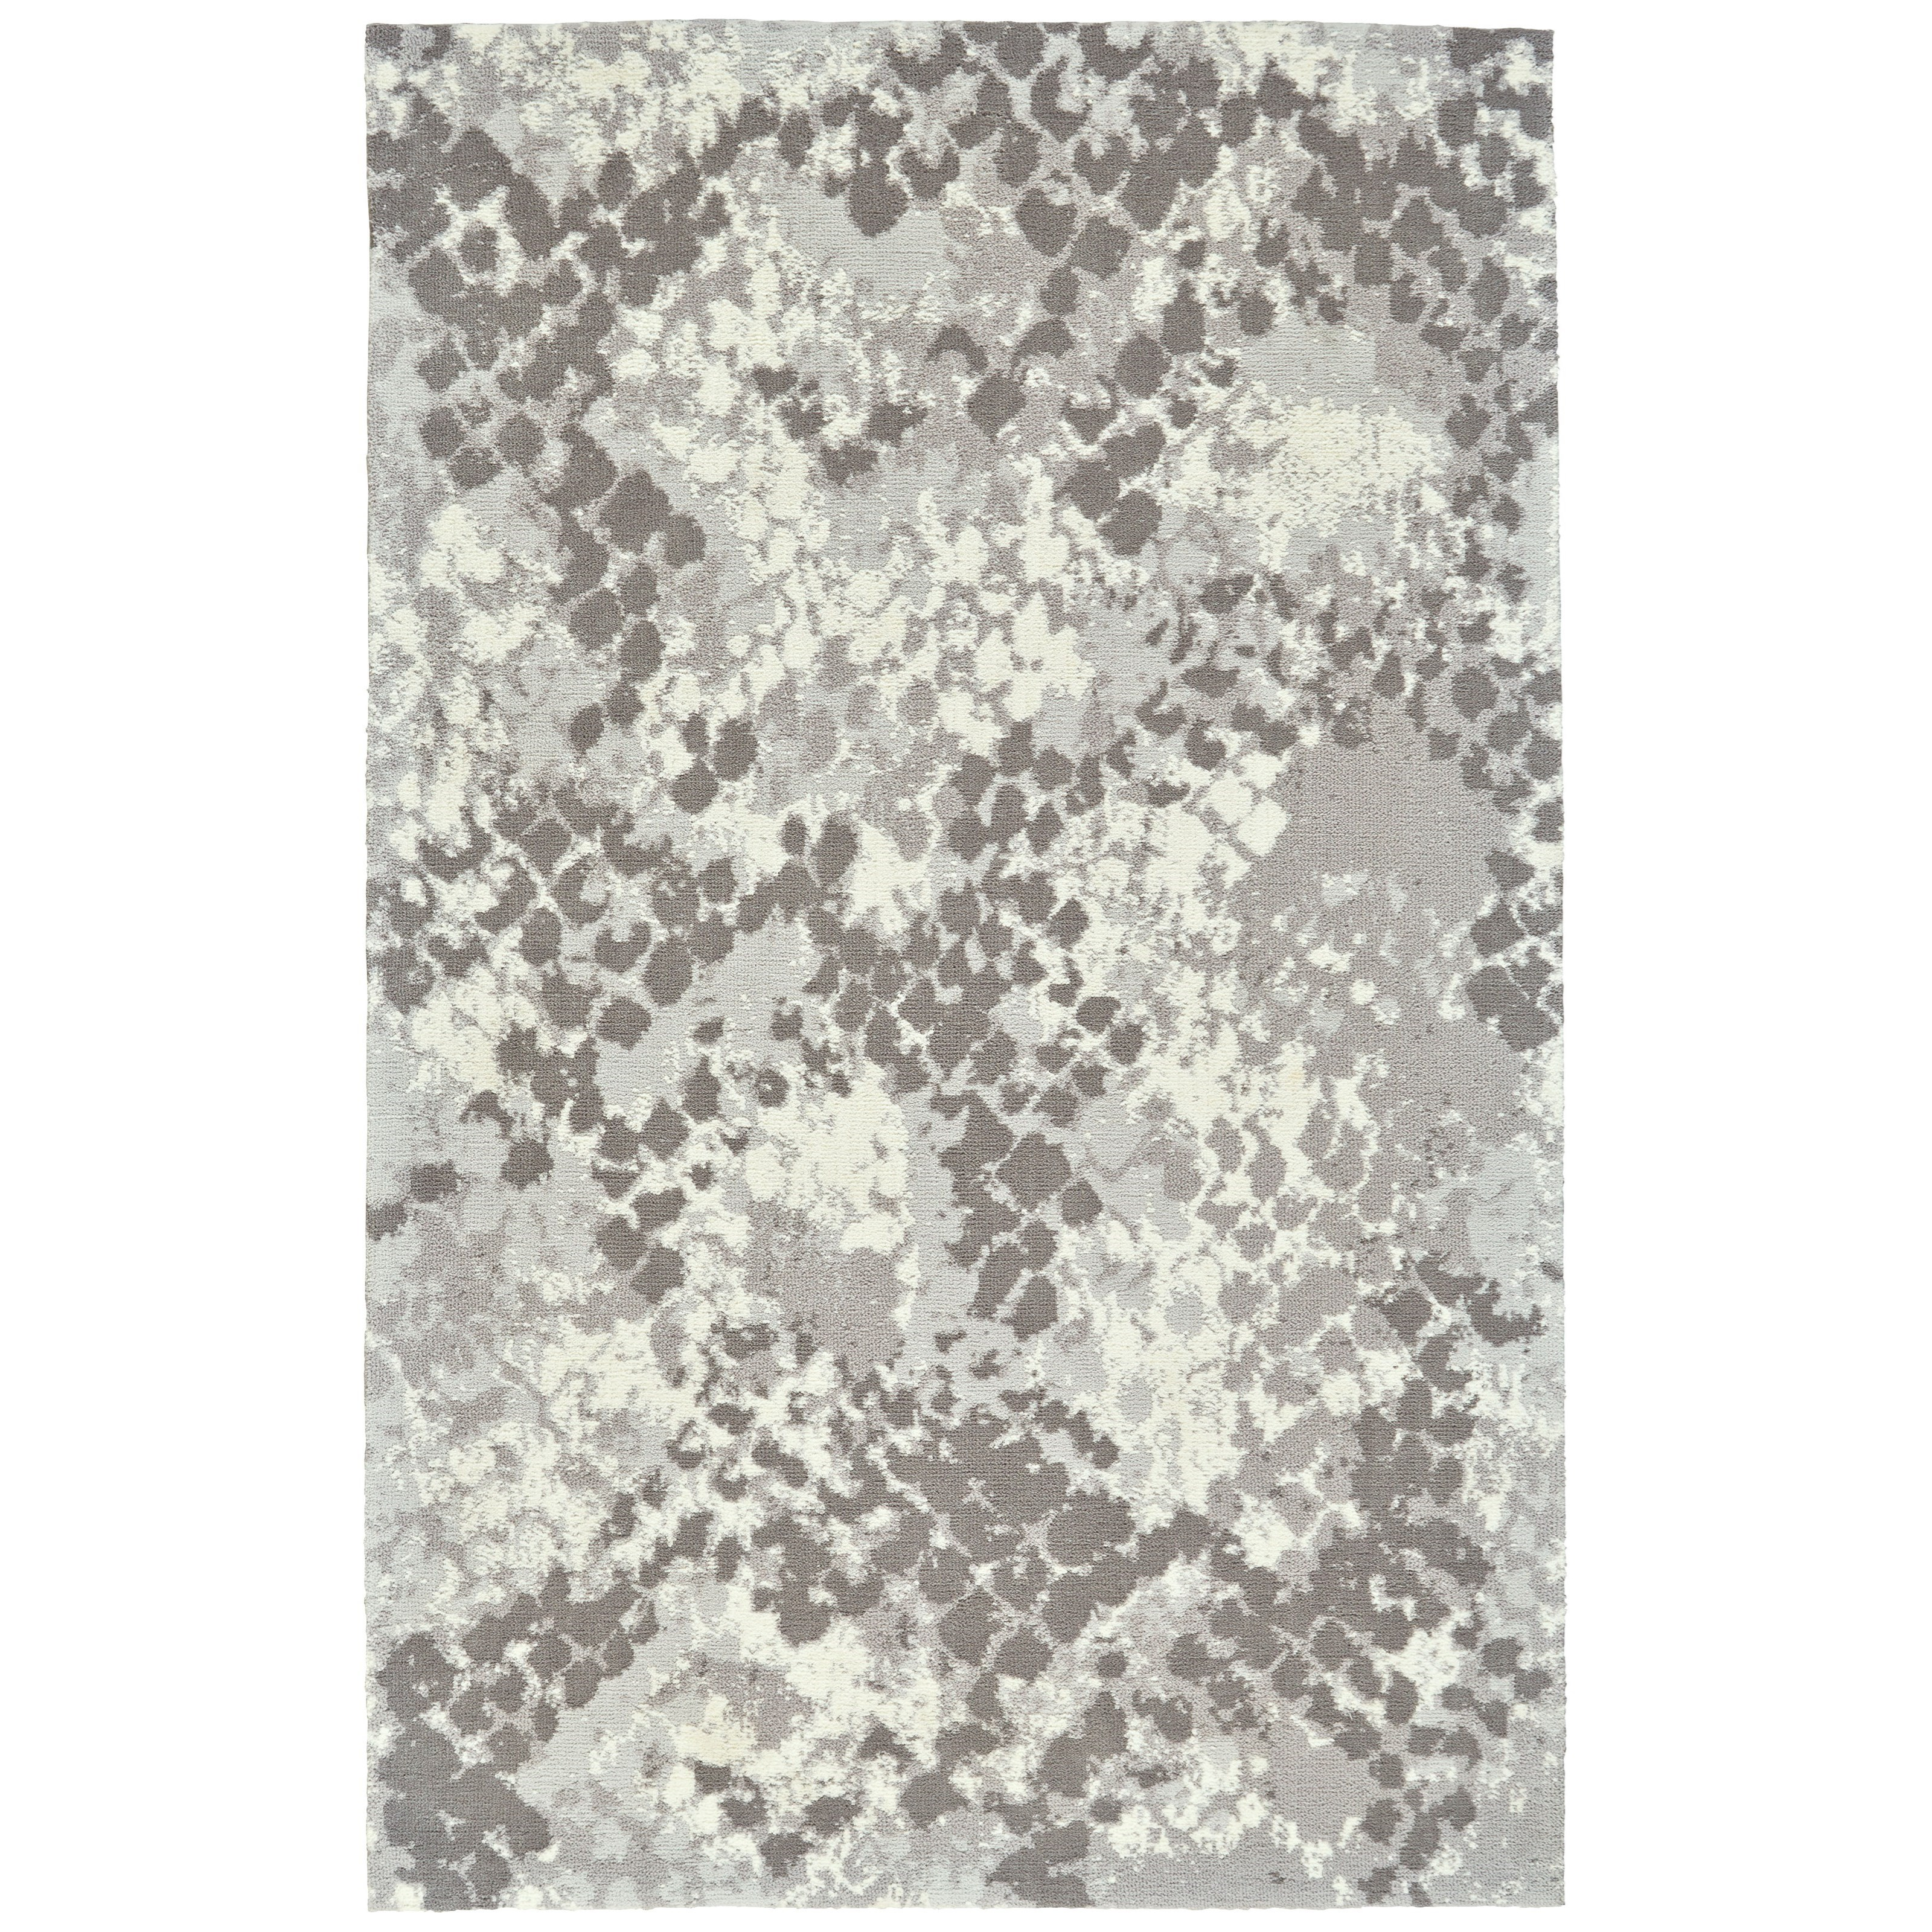 "Carina Pyrite 9'-6"" x 13'-6"" Area Rug by Feizy Rugs at Sprintz Furniture"